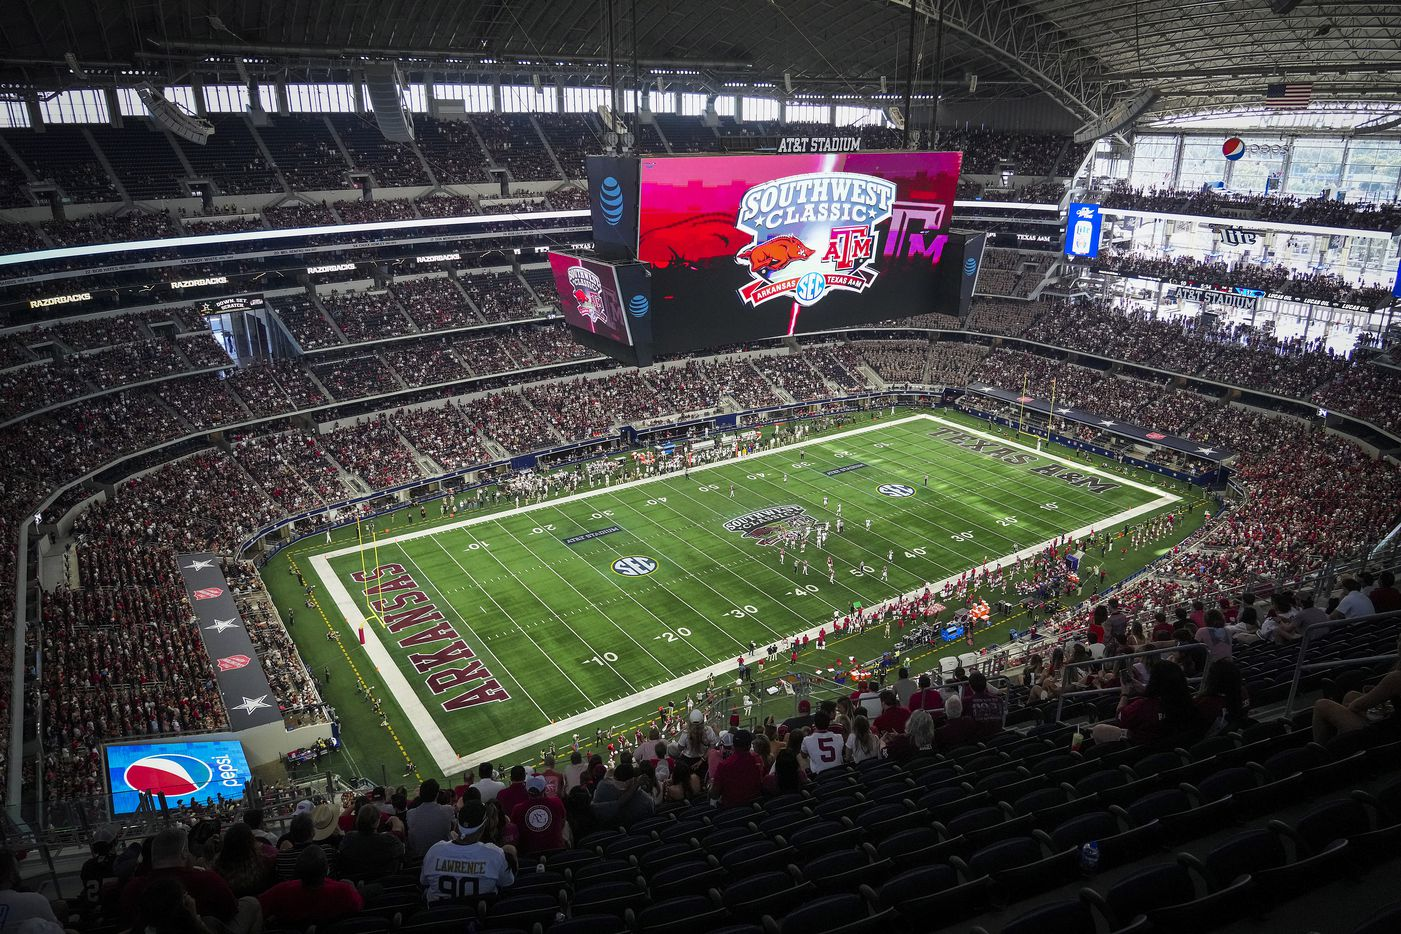 Fans watch Arkansas face Texas A&M during the second half of the Southwest Classic NCAA football game at AT&T Stadium on Saturday, Sept. 25, 2021, in Arlington. Arkansas won the game 20-10.